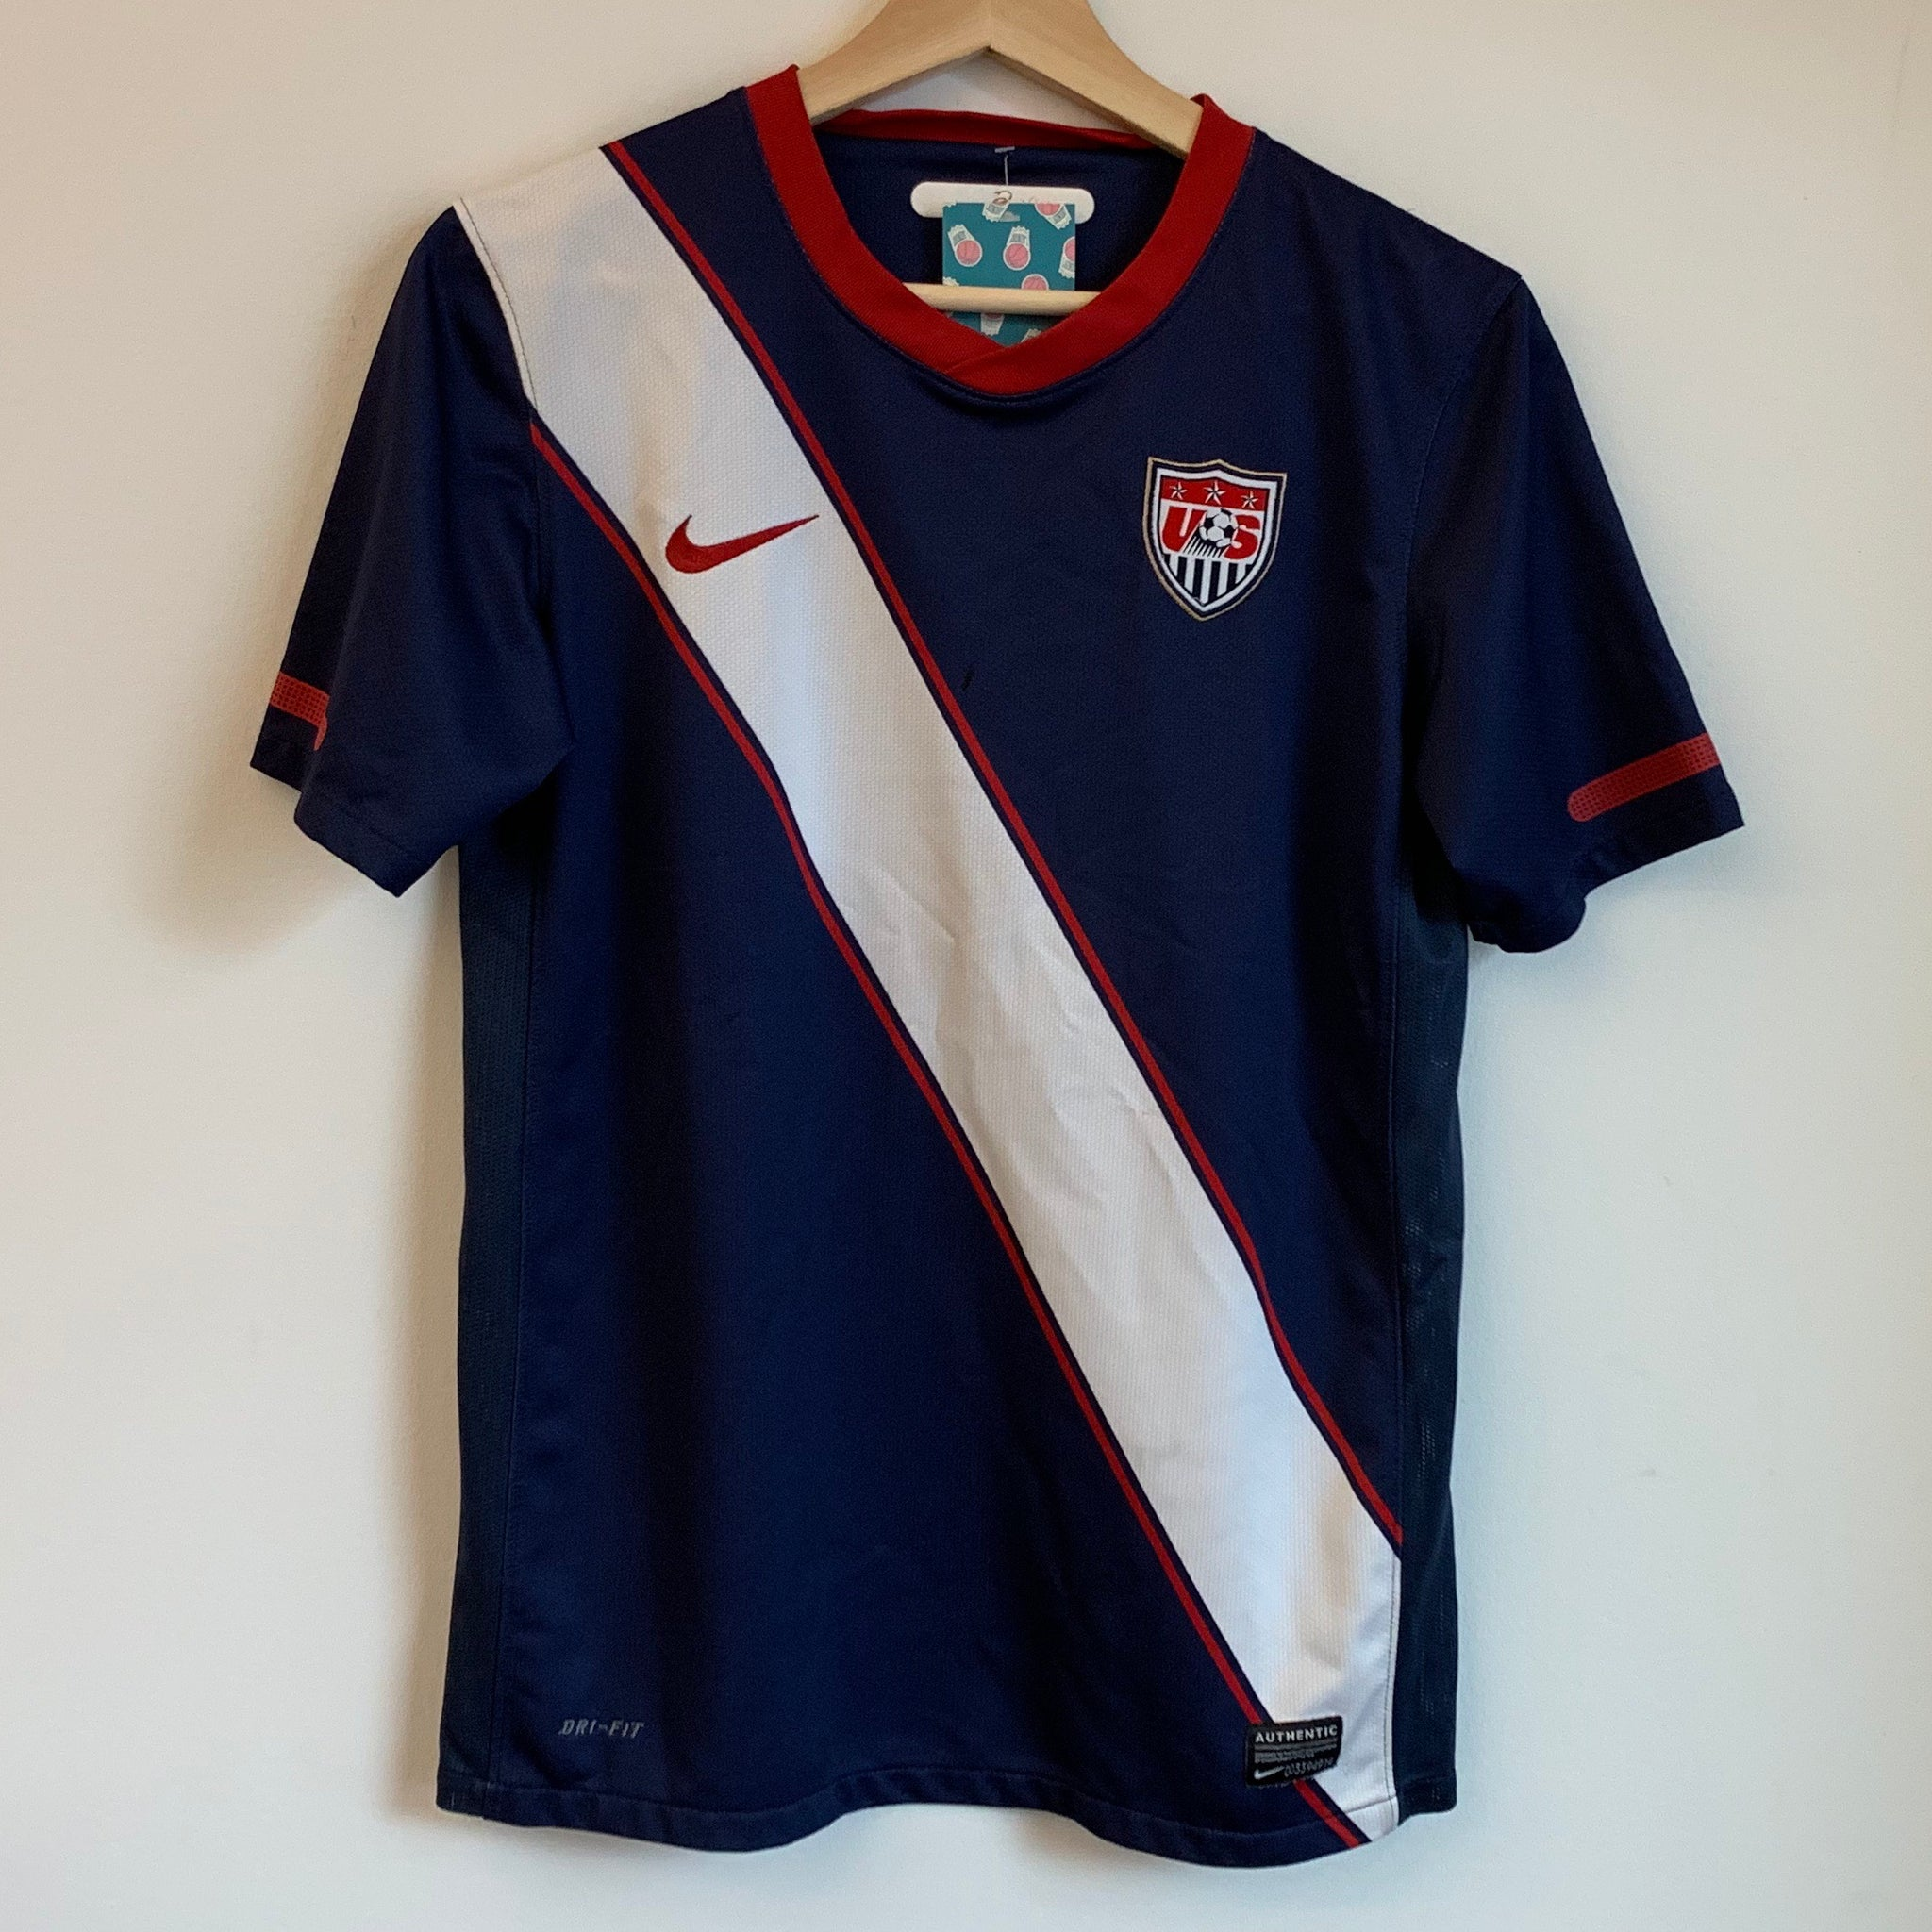 Youth Nike USA Stripe Navy/White Jersey